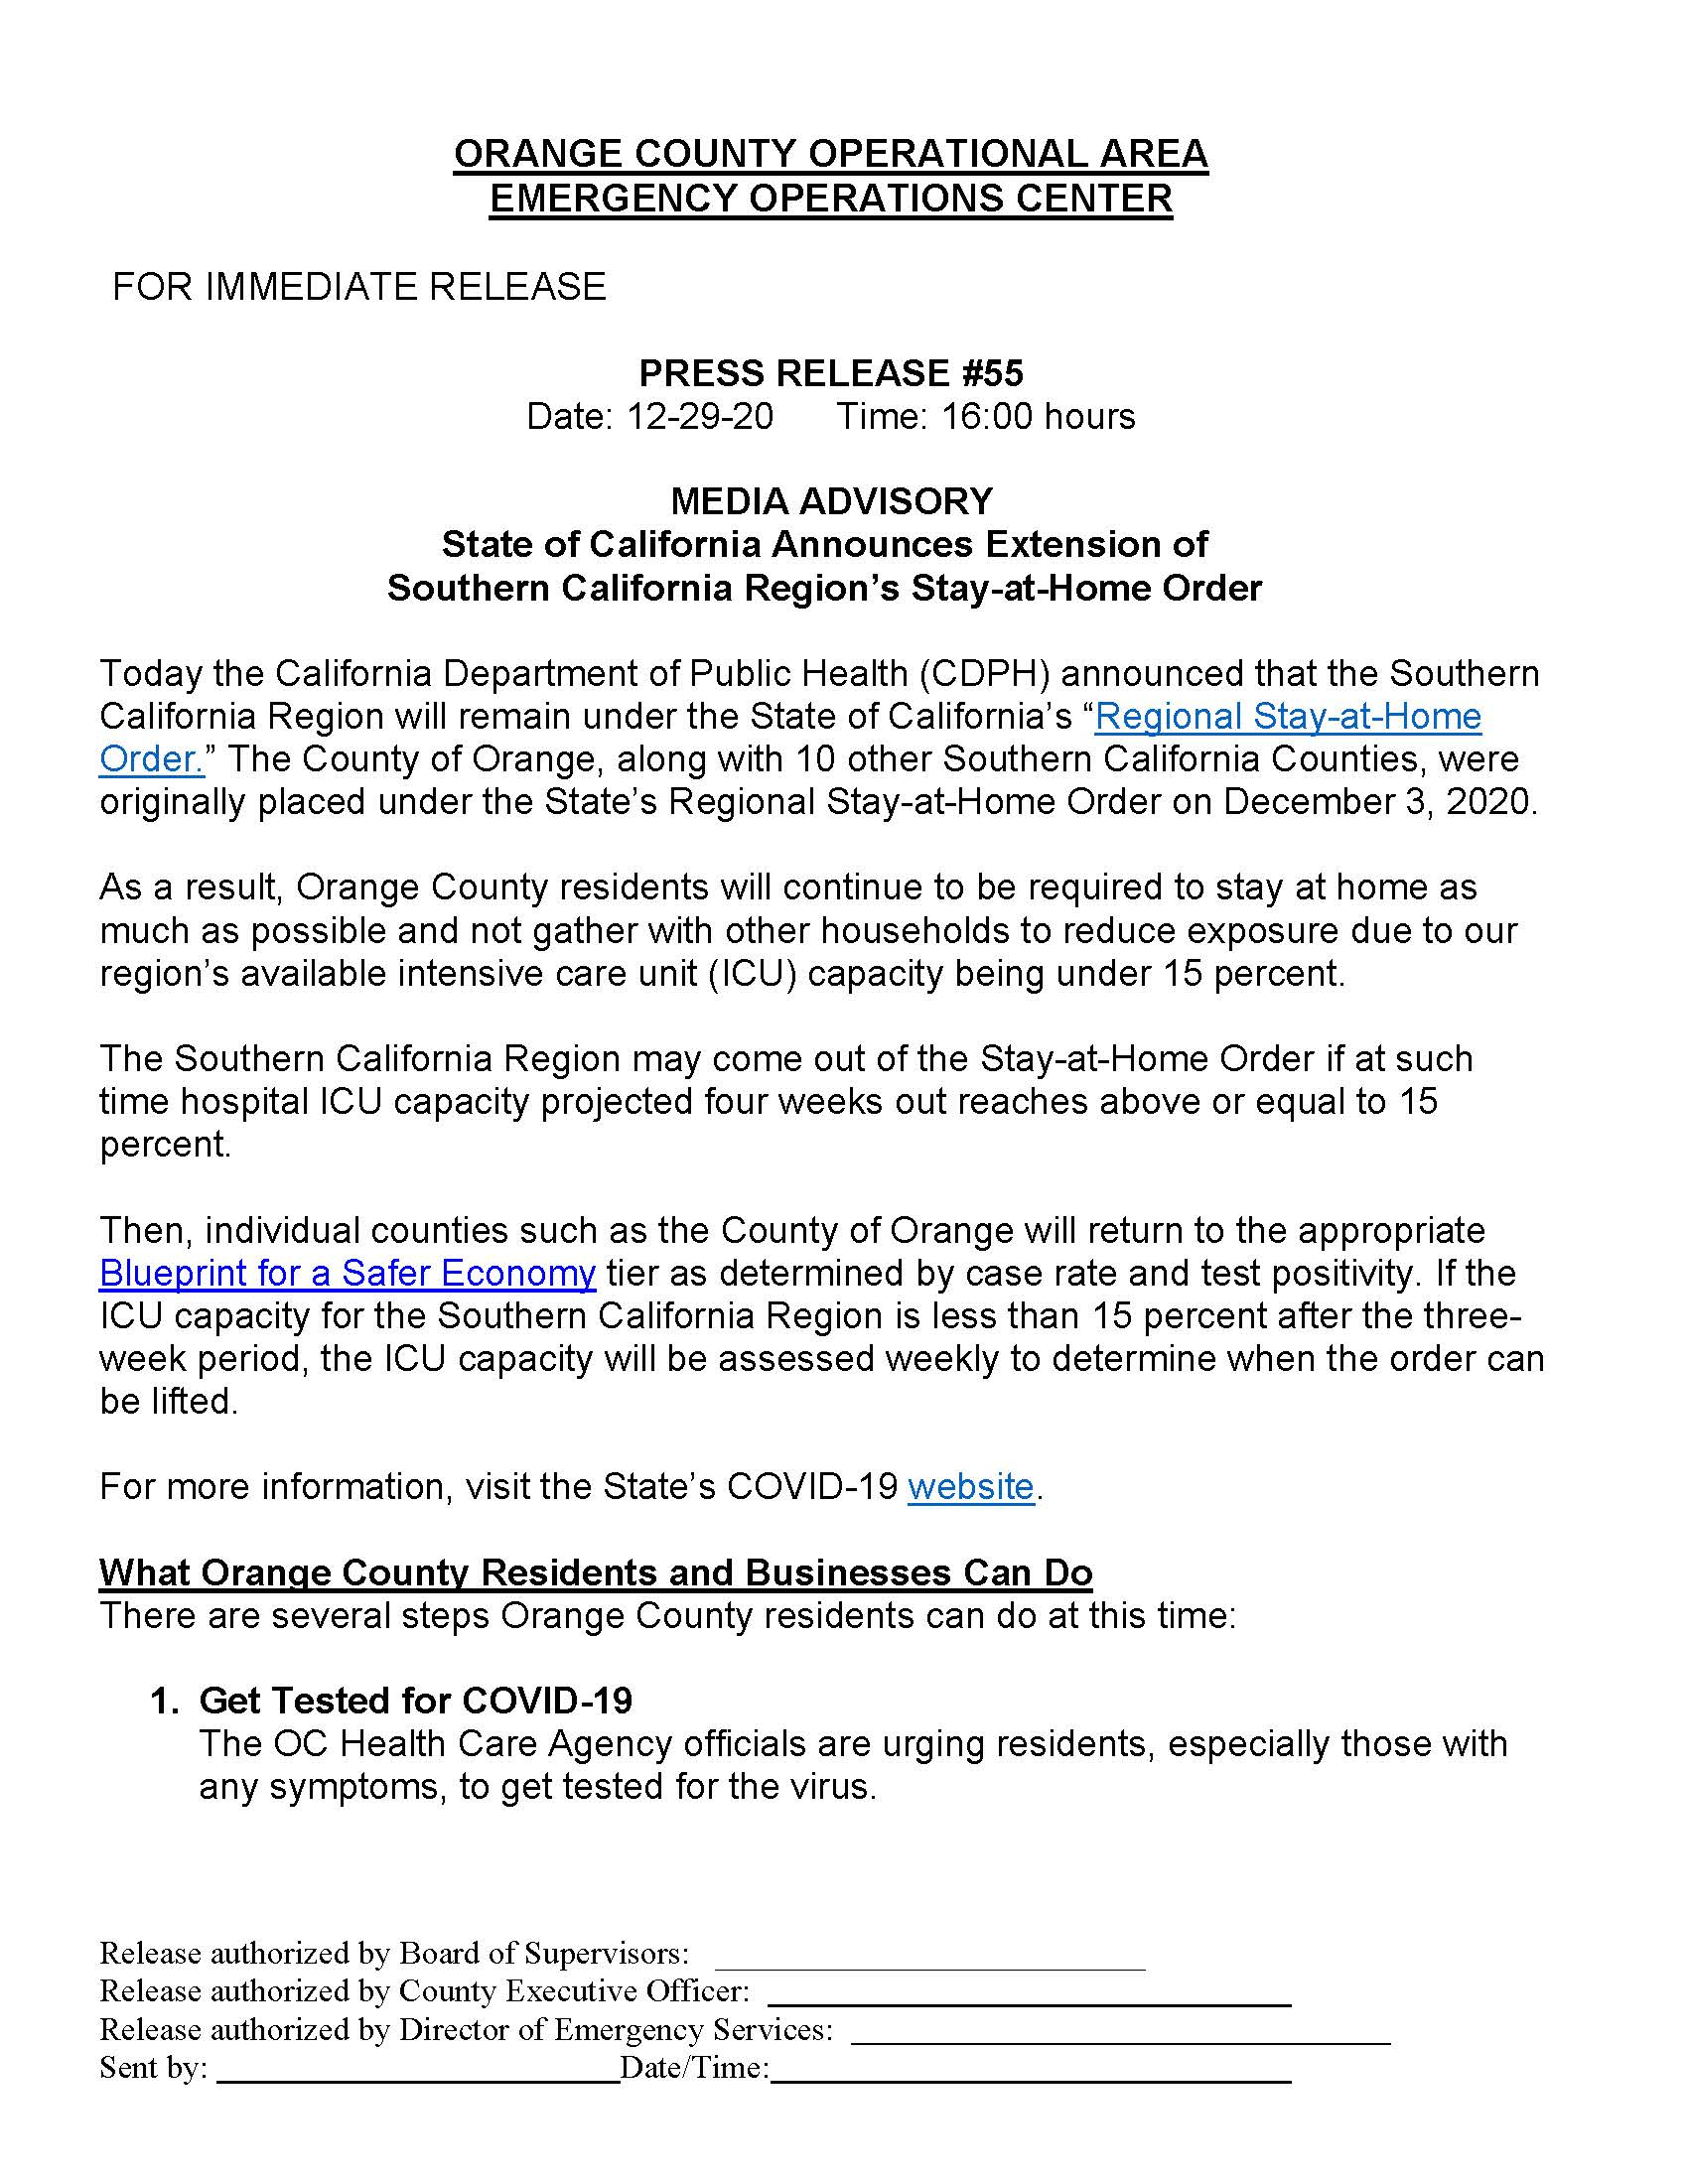 EOC Press Release 55 - State Regional Stay-at-Home Order Extension 12-29-20_Page_1